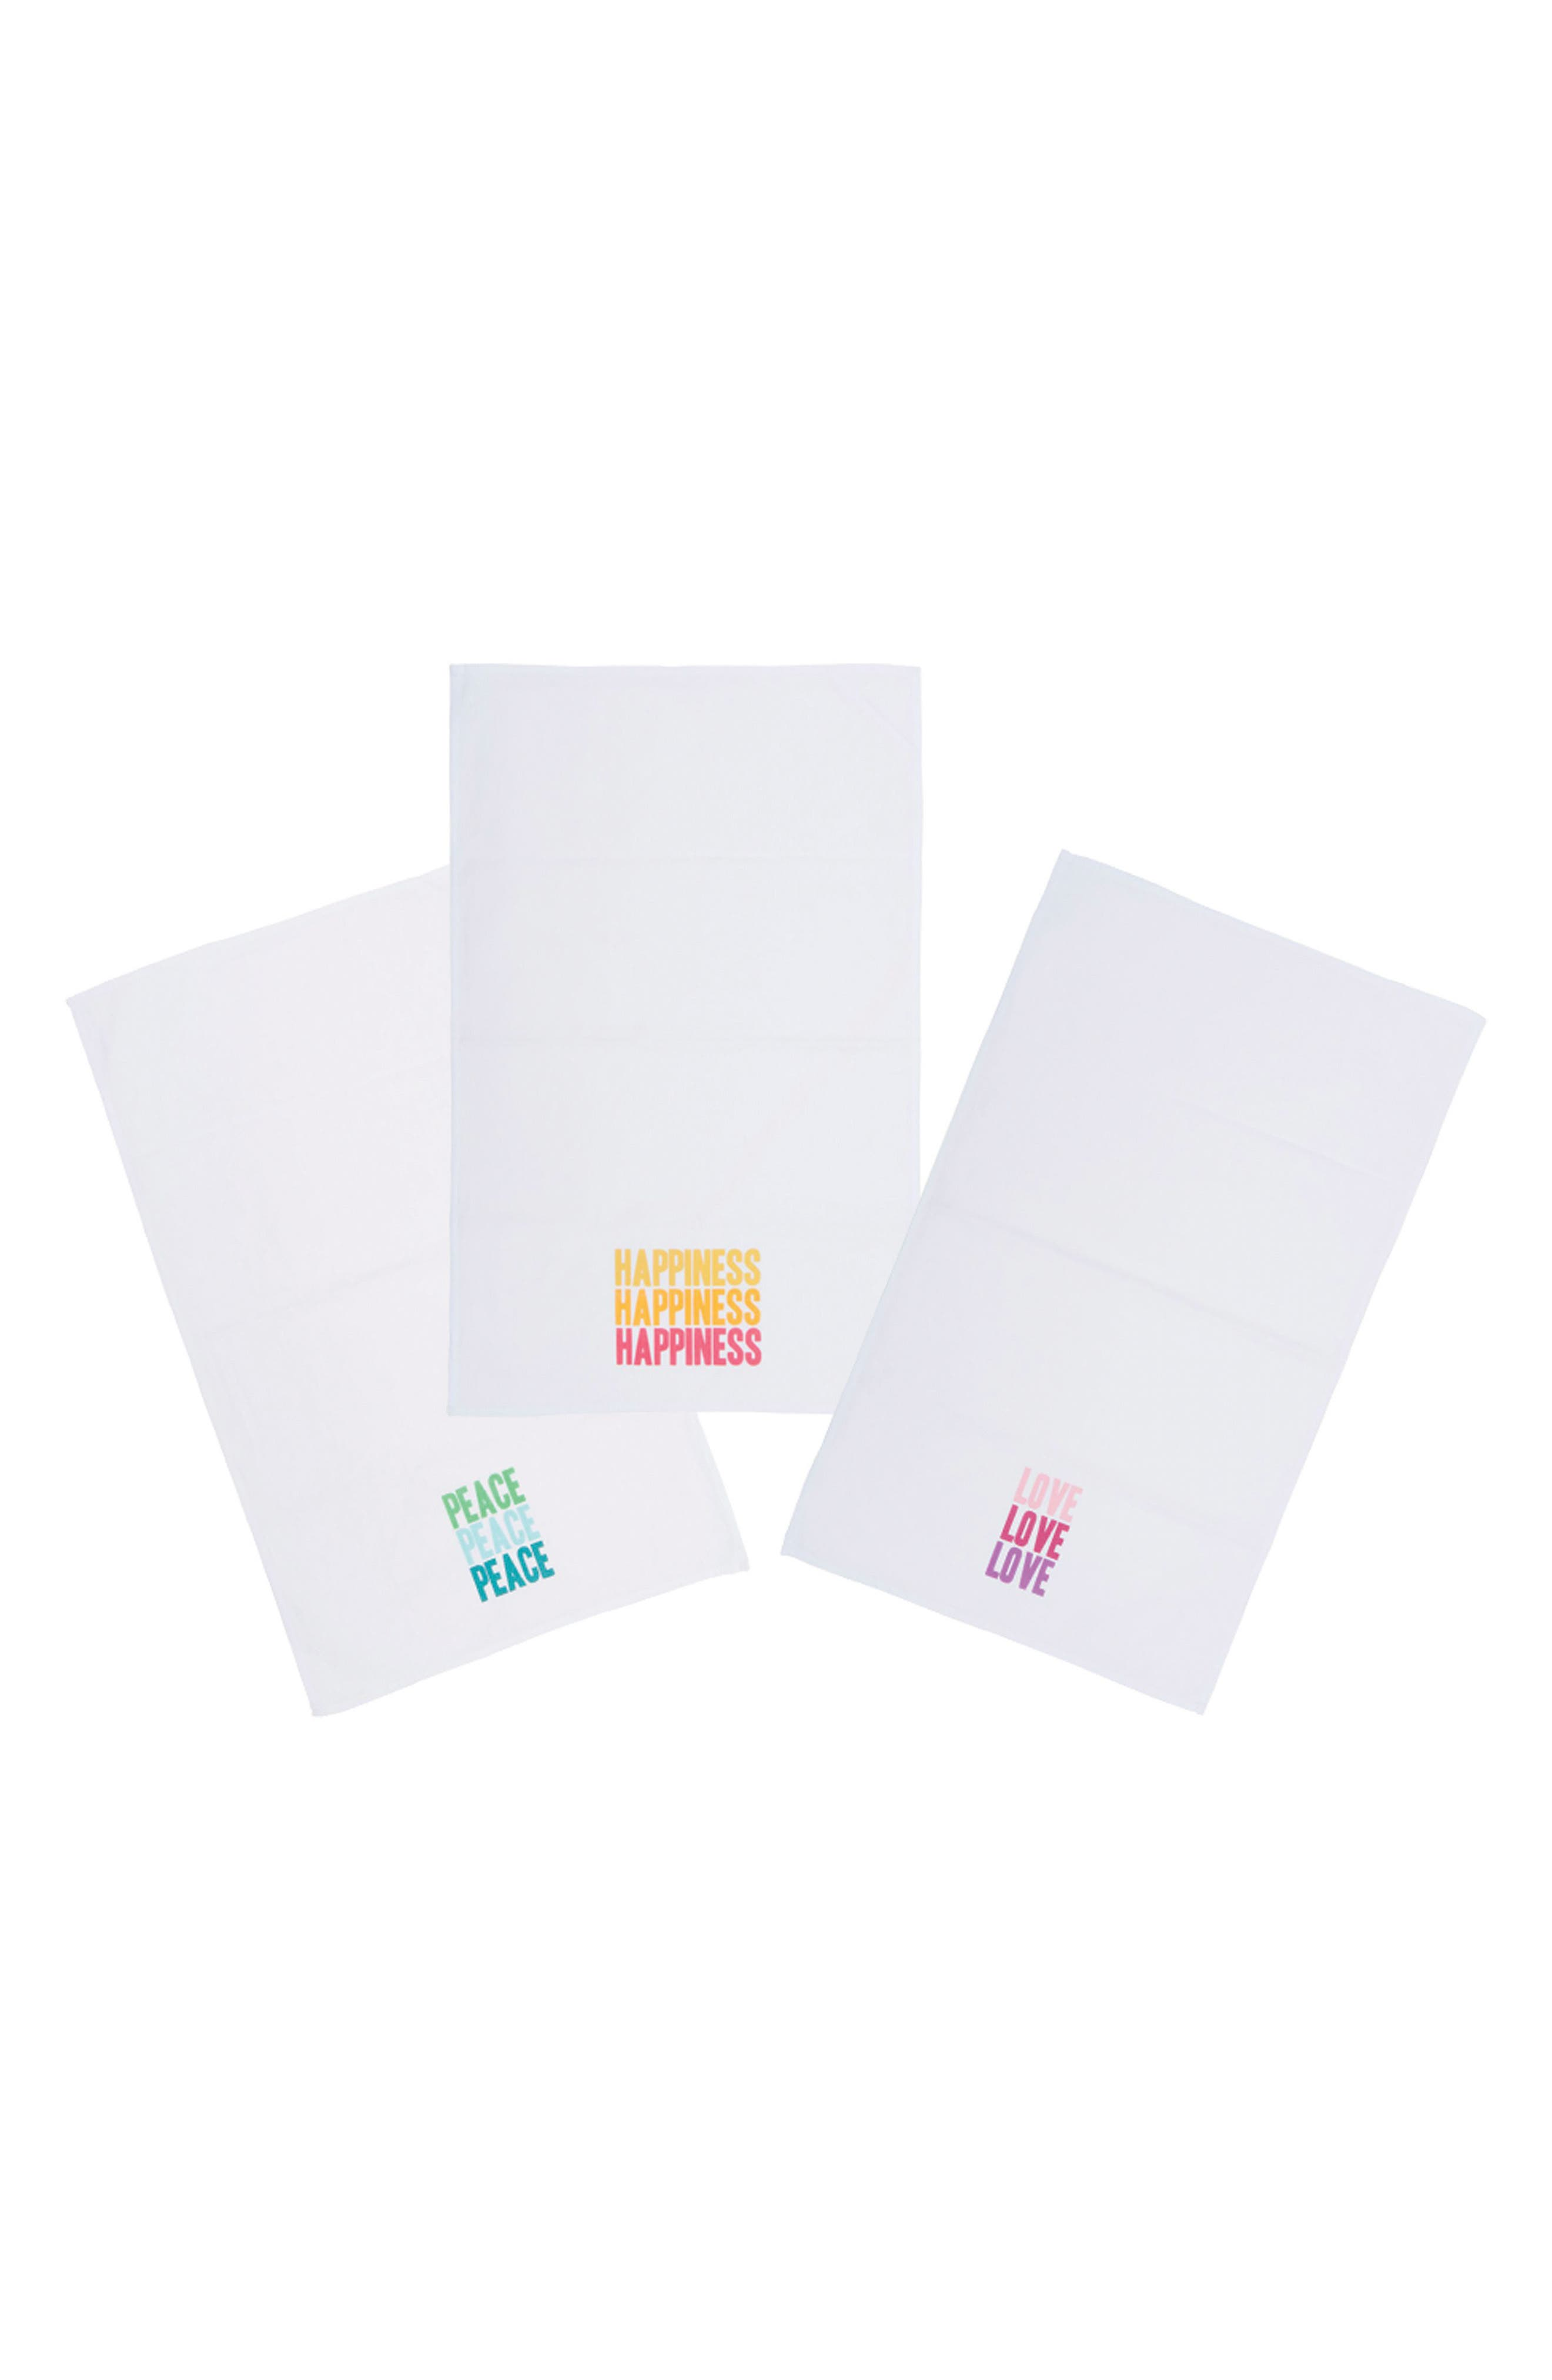 Main Image - Sisters of Los Angeles Peace Love Happiness Set of 3 Tea Towels